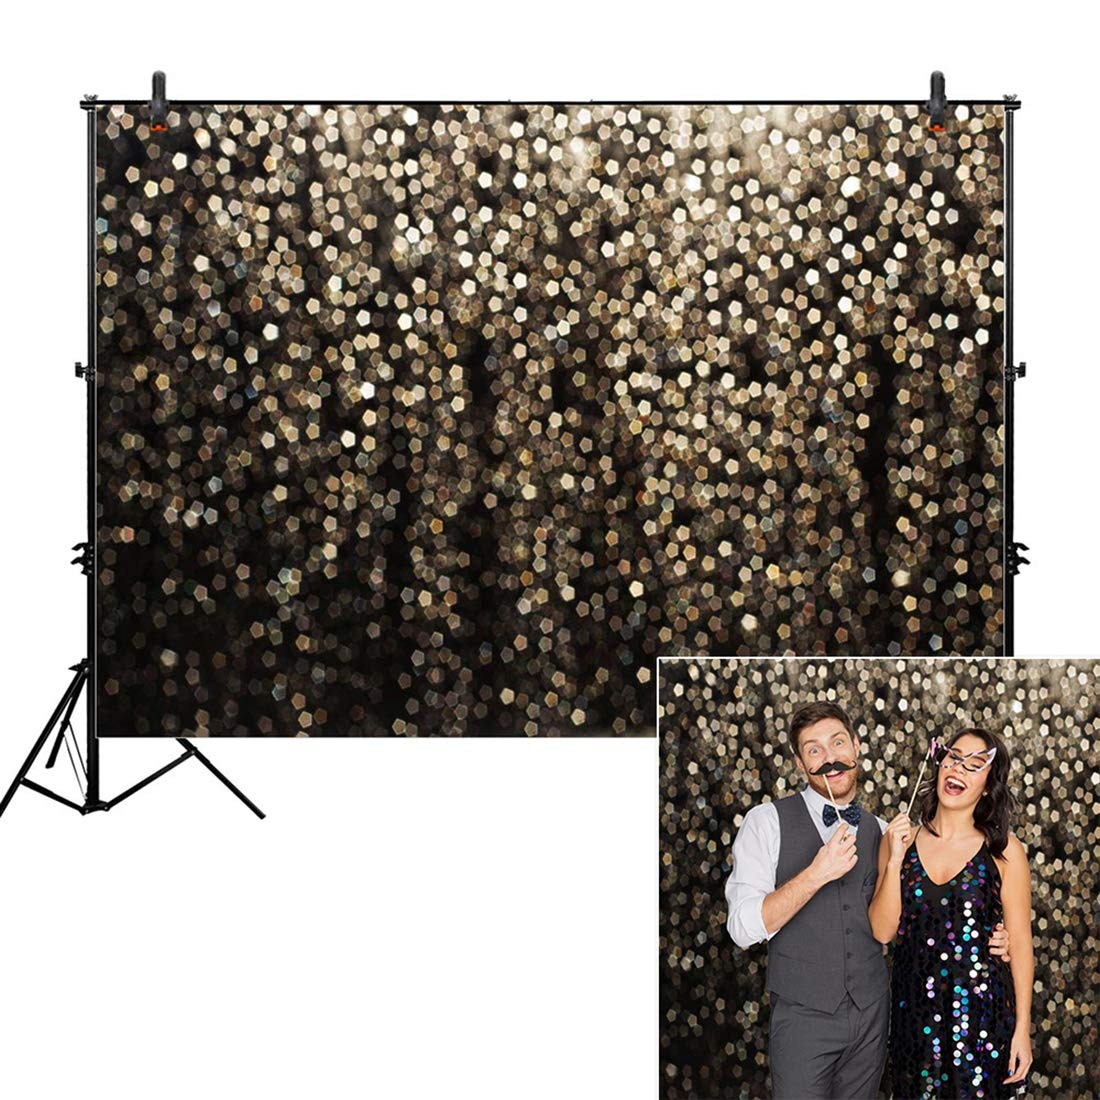 Allenjoy 7x5ft Gold Bokeh Spots Backdrop for Selfie Birthday Party Pictures Photo Booth Shoot Graduation Prom Dance Decor Wedding Vintage Astract Glitter Dot Studio Props Photography Background by Allenjoy